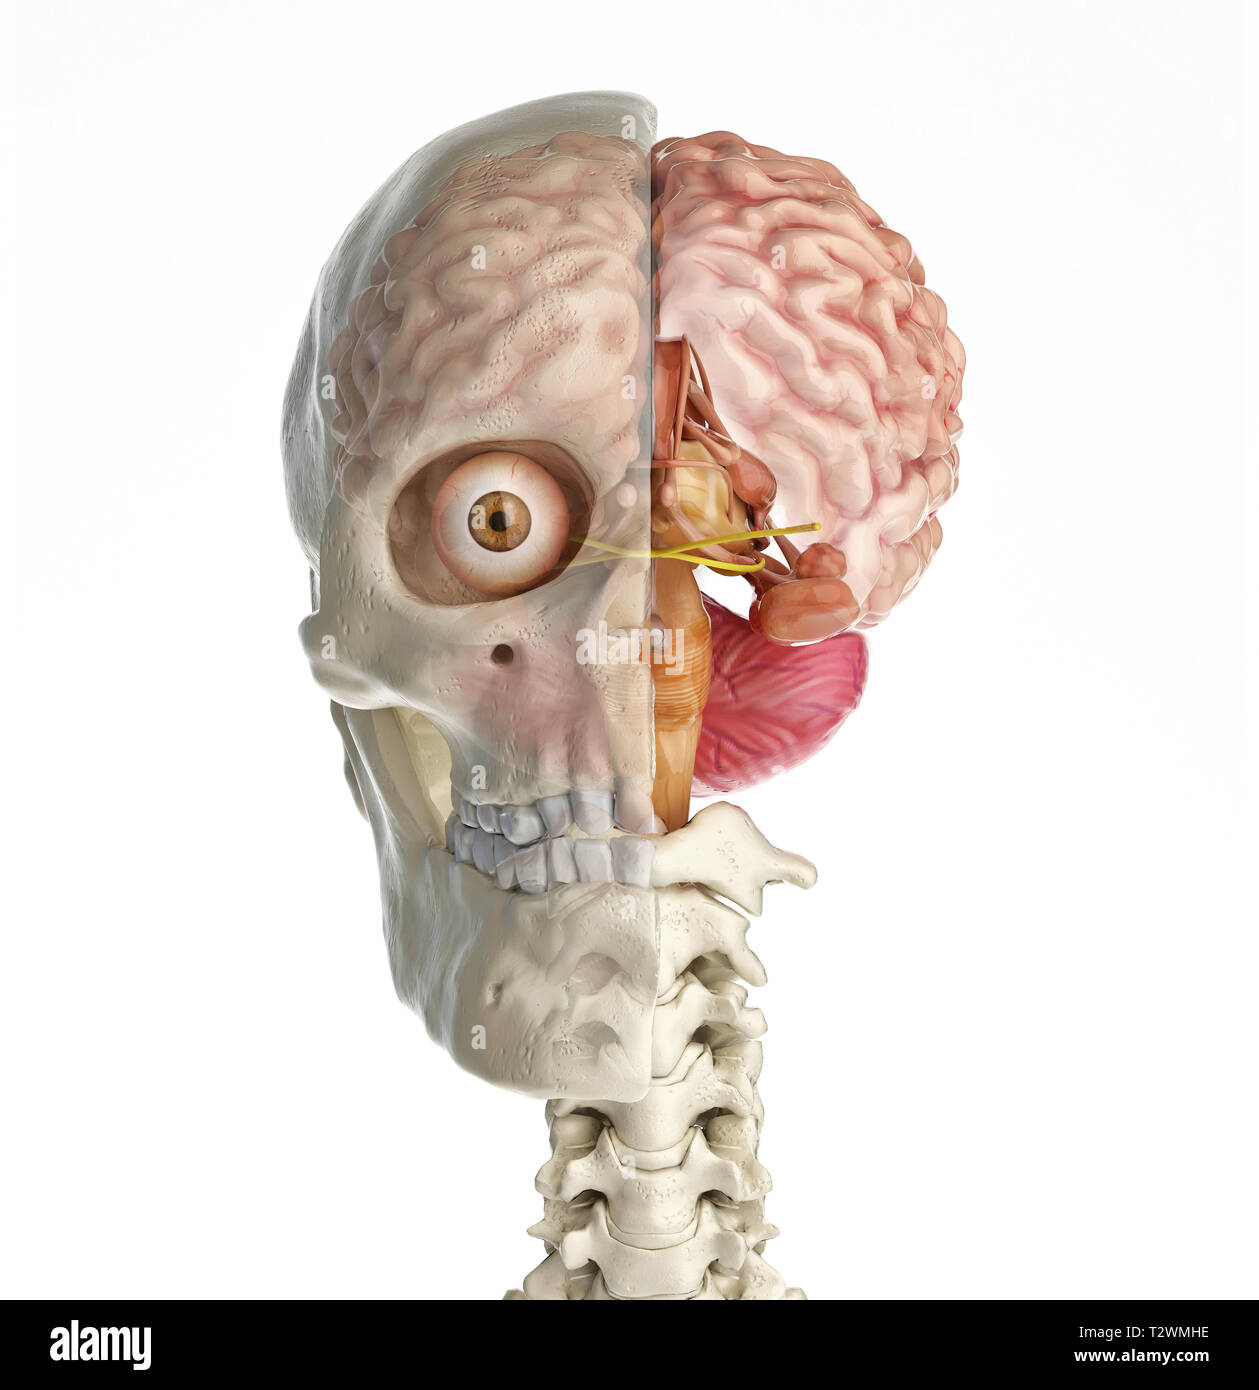 Human skull mid sagittal cross-section with brain. Front view on white background. - Stock Image